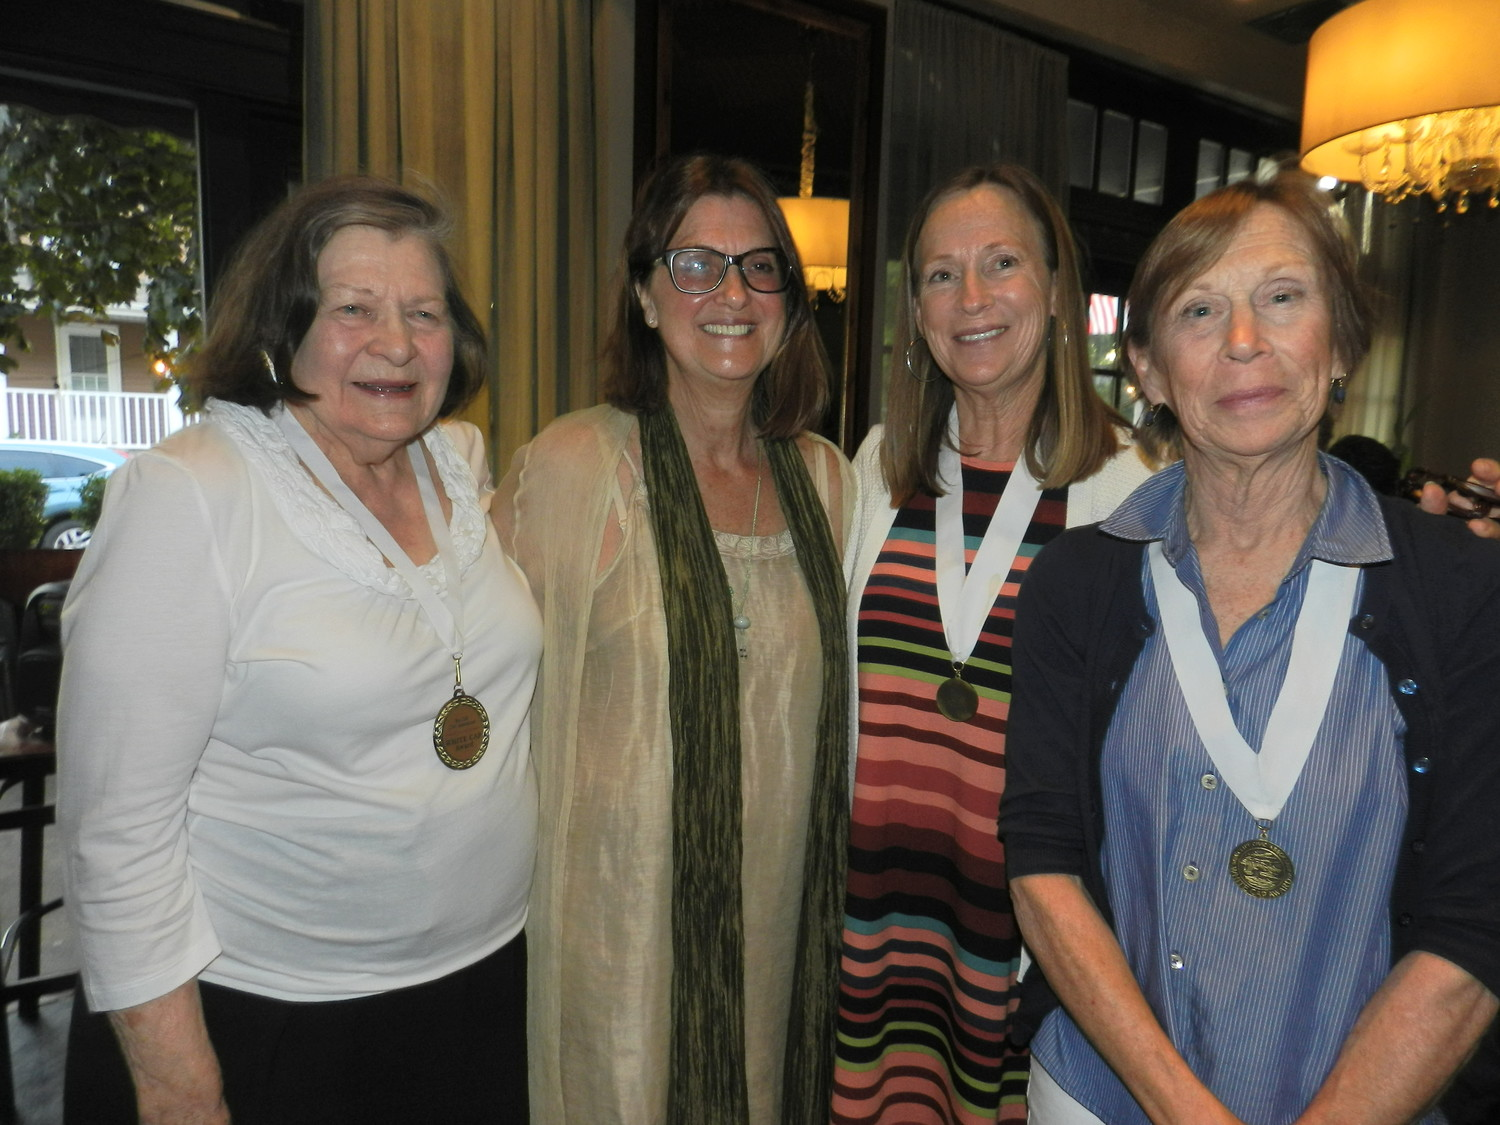 Estelle Moore, left, was nominated by her friends Beth Greenberg, Laura Kavanaugh and Gwynne Lennon.